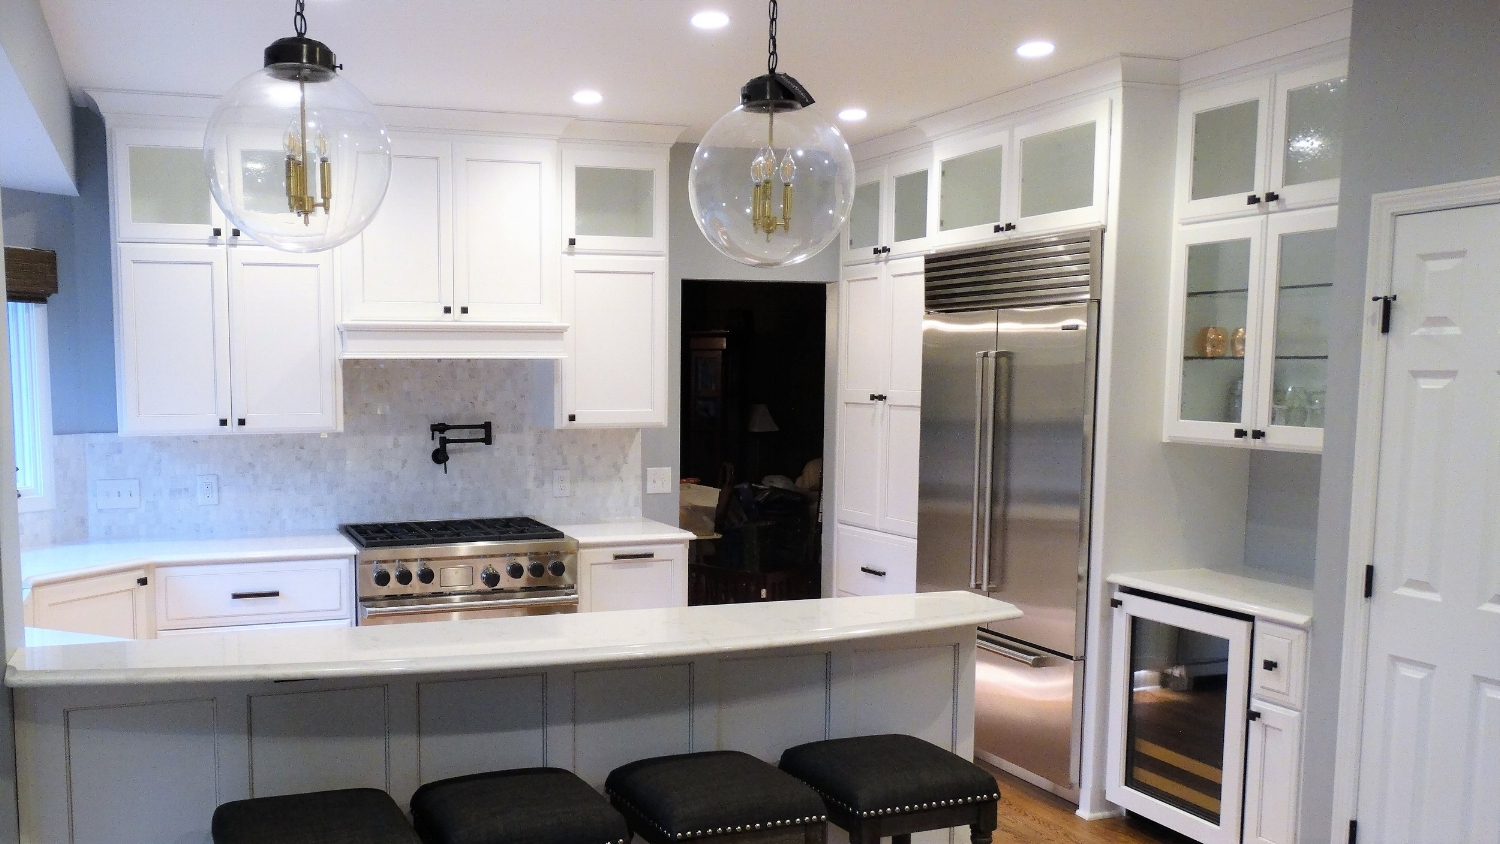 1st Place Residential Kitchen $100-250K